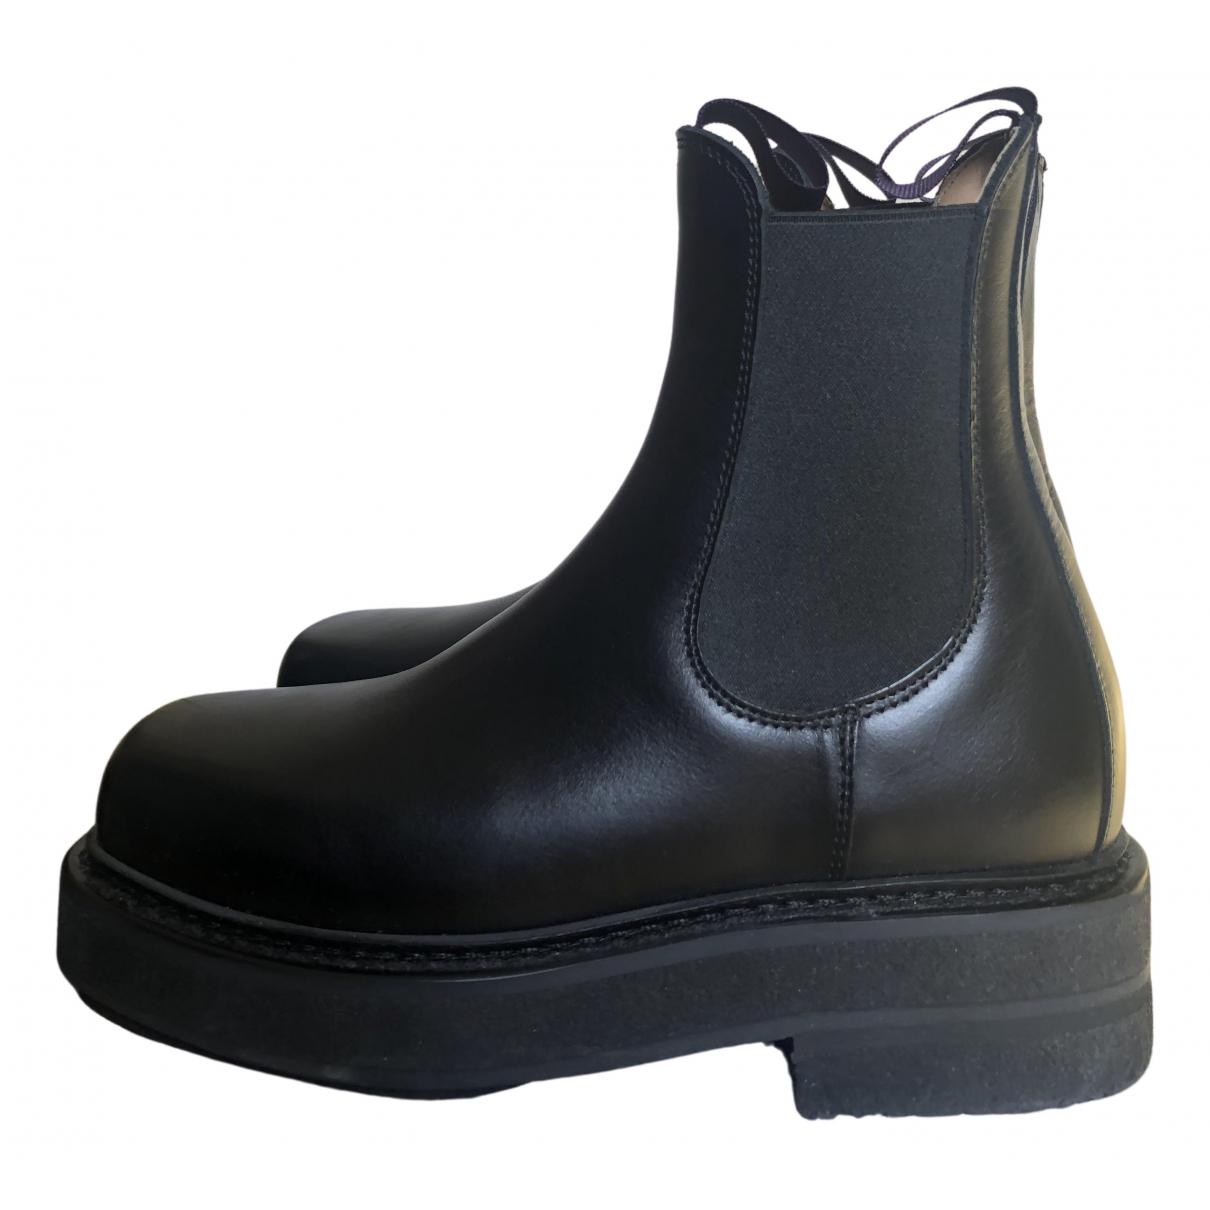 Eytys N Black Leather Ankle boots for Women 36 EU